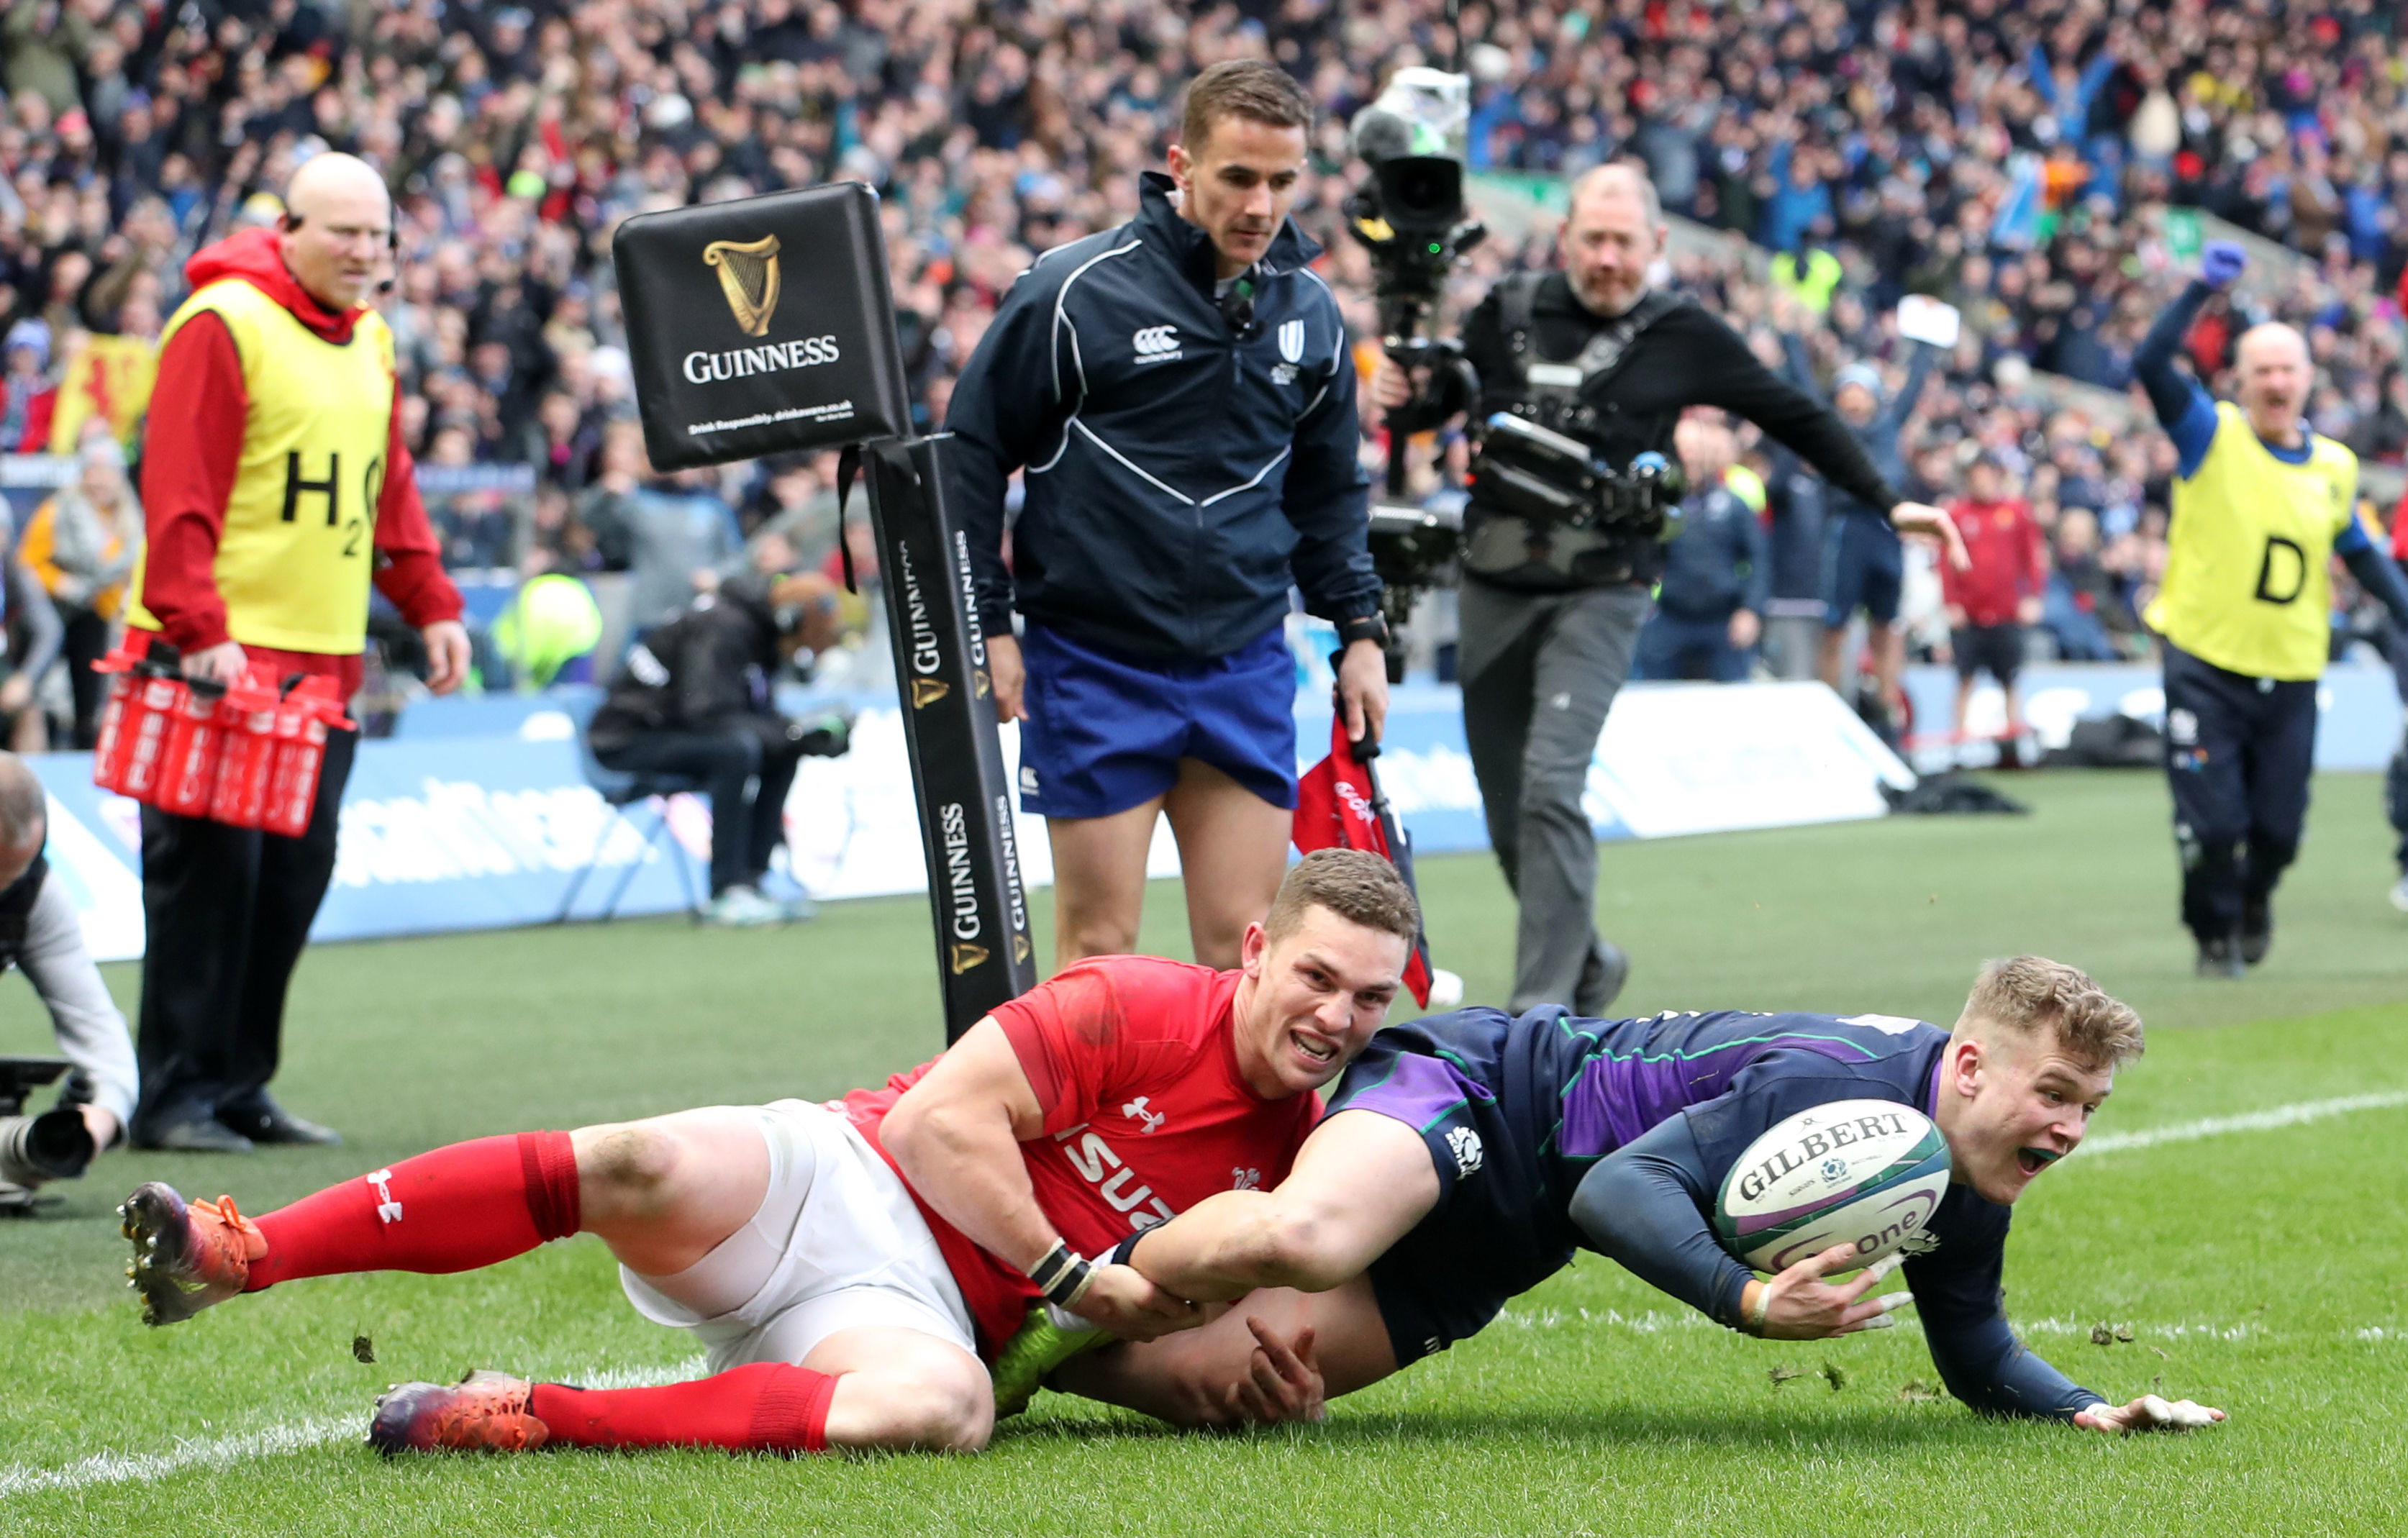 Scotland's Darcy Graham dives in to score Scotland's sole try.